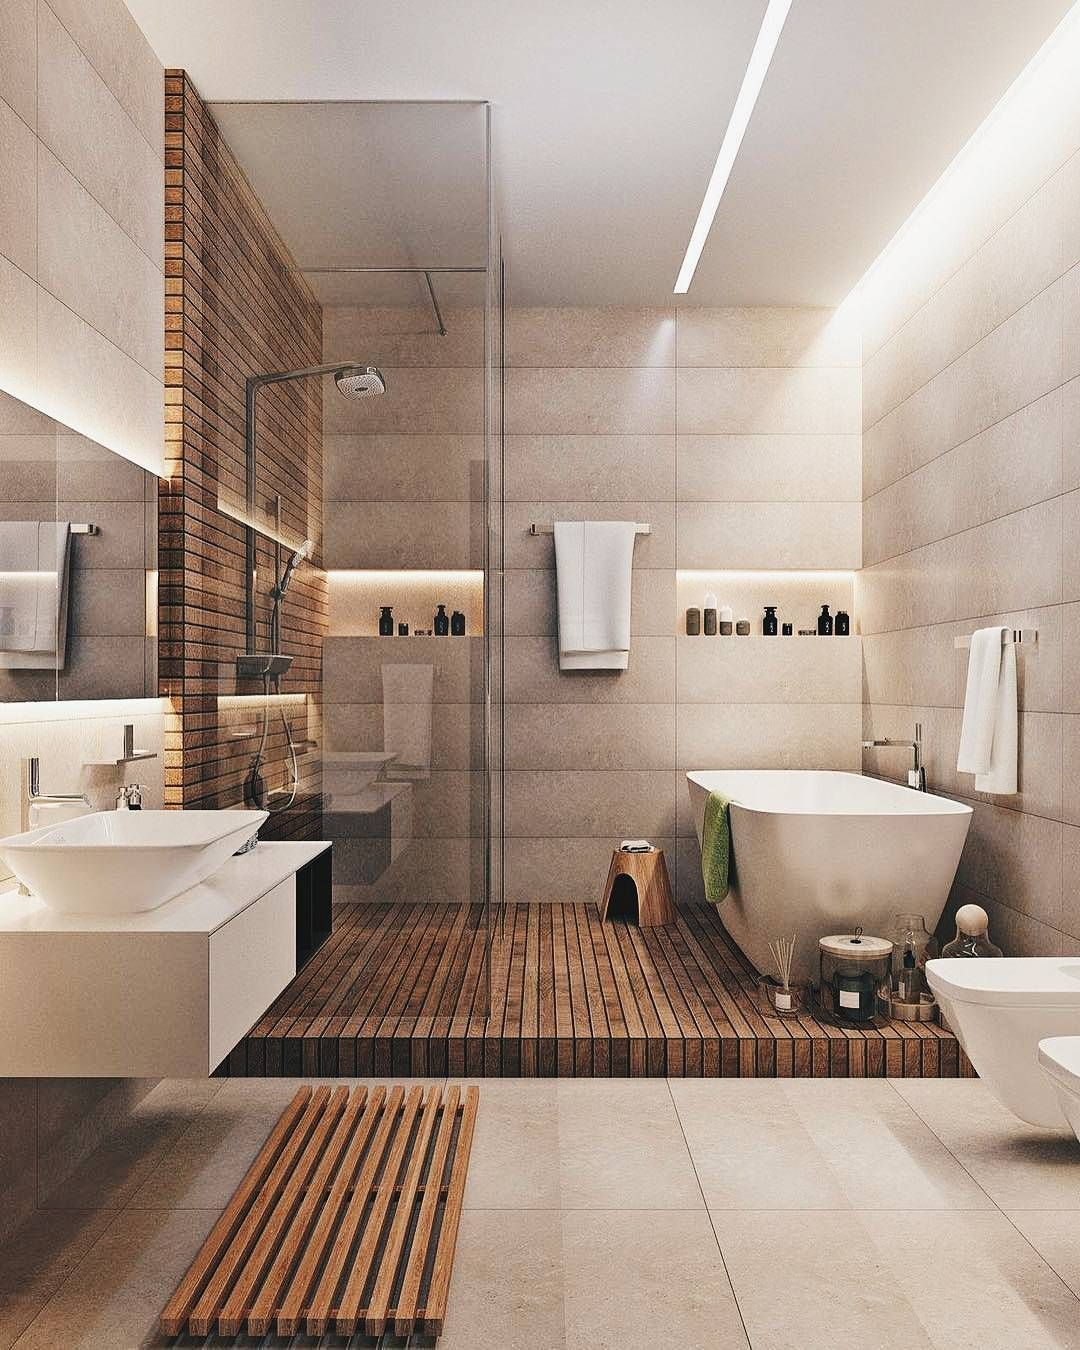 Badezimmer dekor in meiner nähe have you ever wondered what it would be like to relax in a master